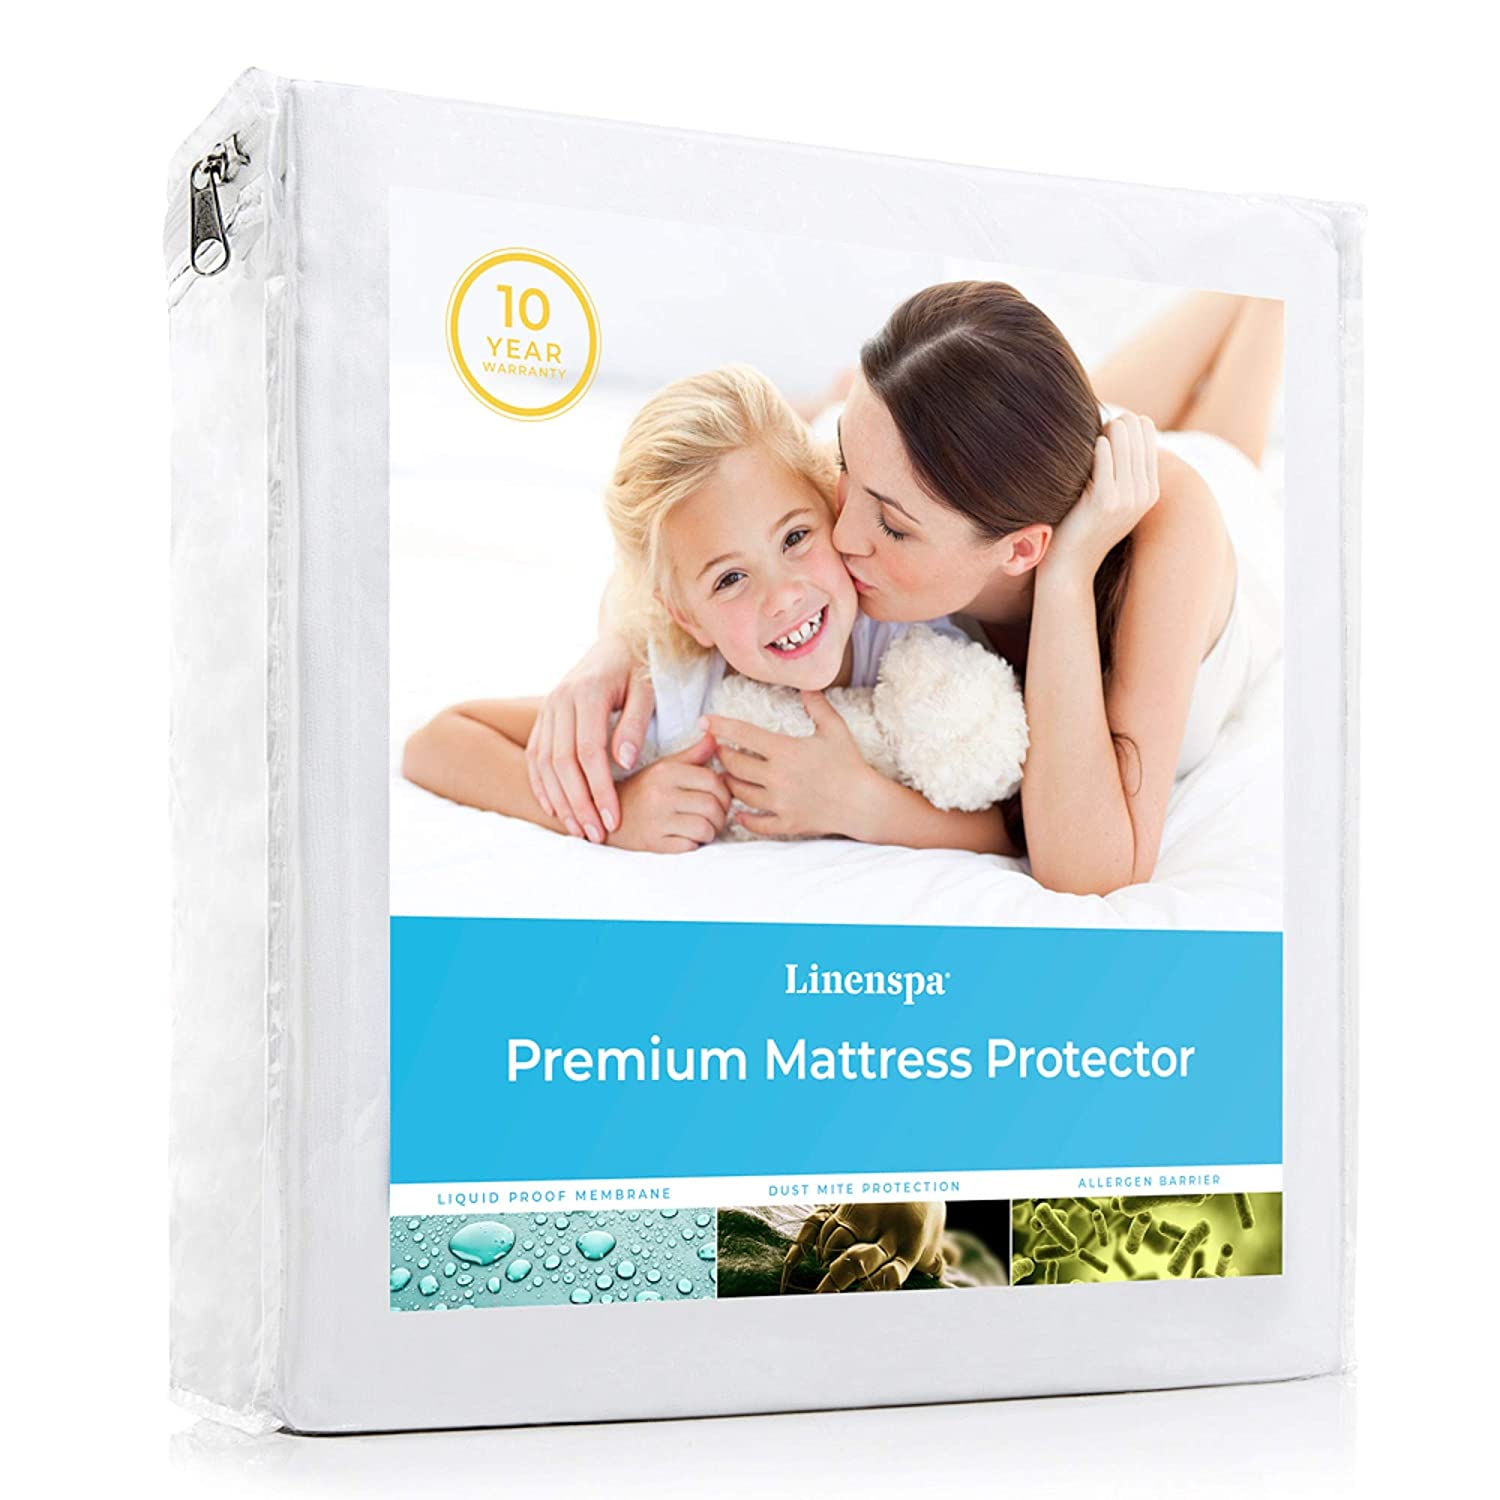 Linenspa LS0PQQMP Premium Smooth Fabric Mattress Protector, Queen, Top Only